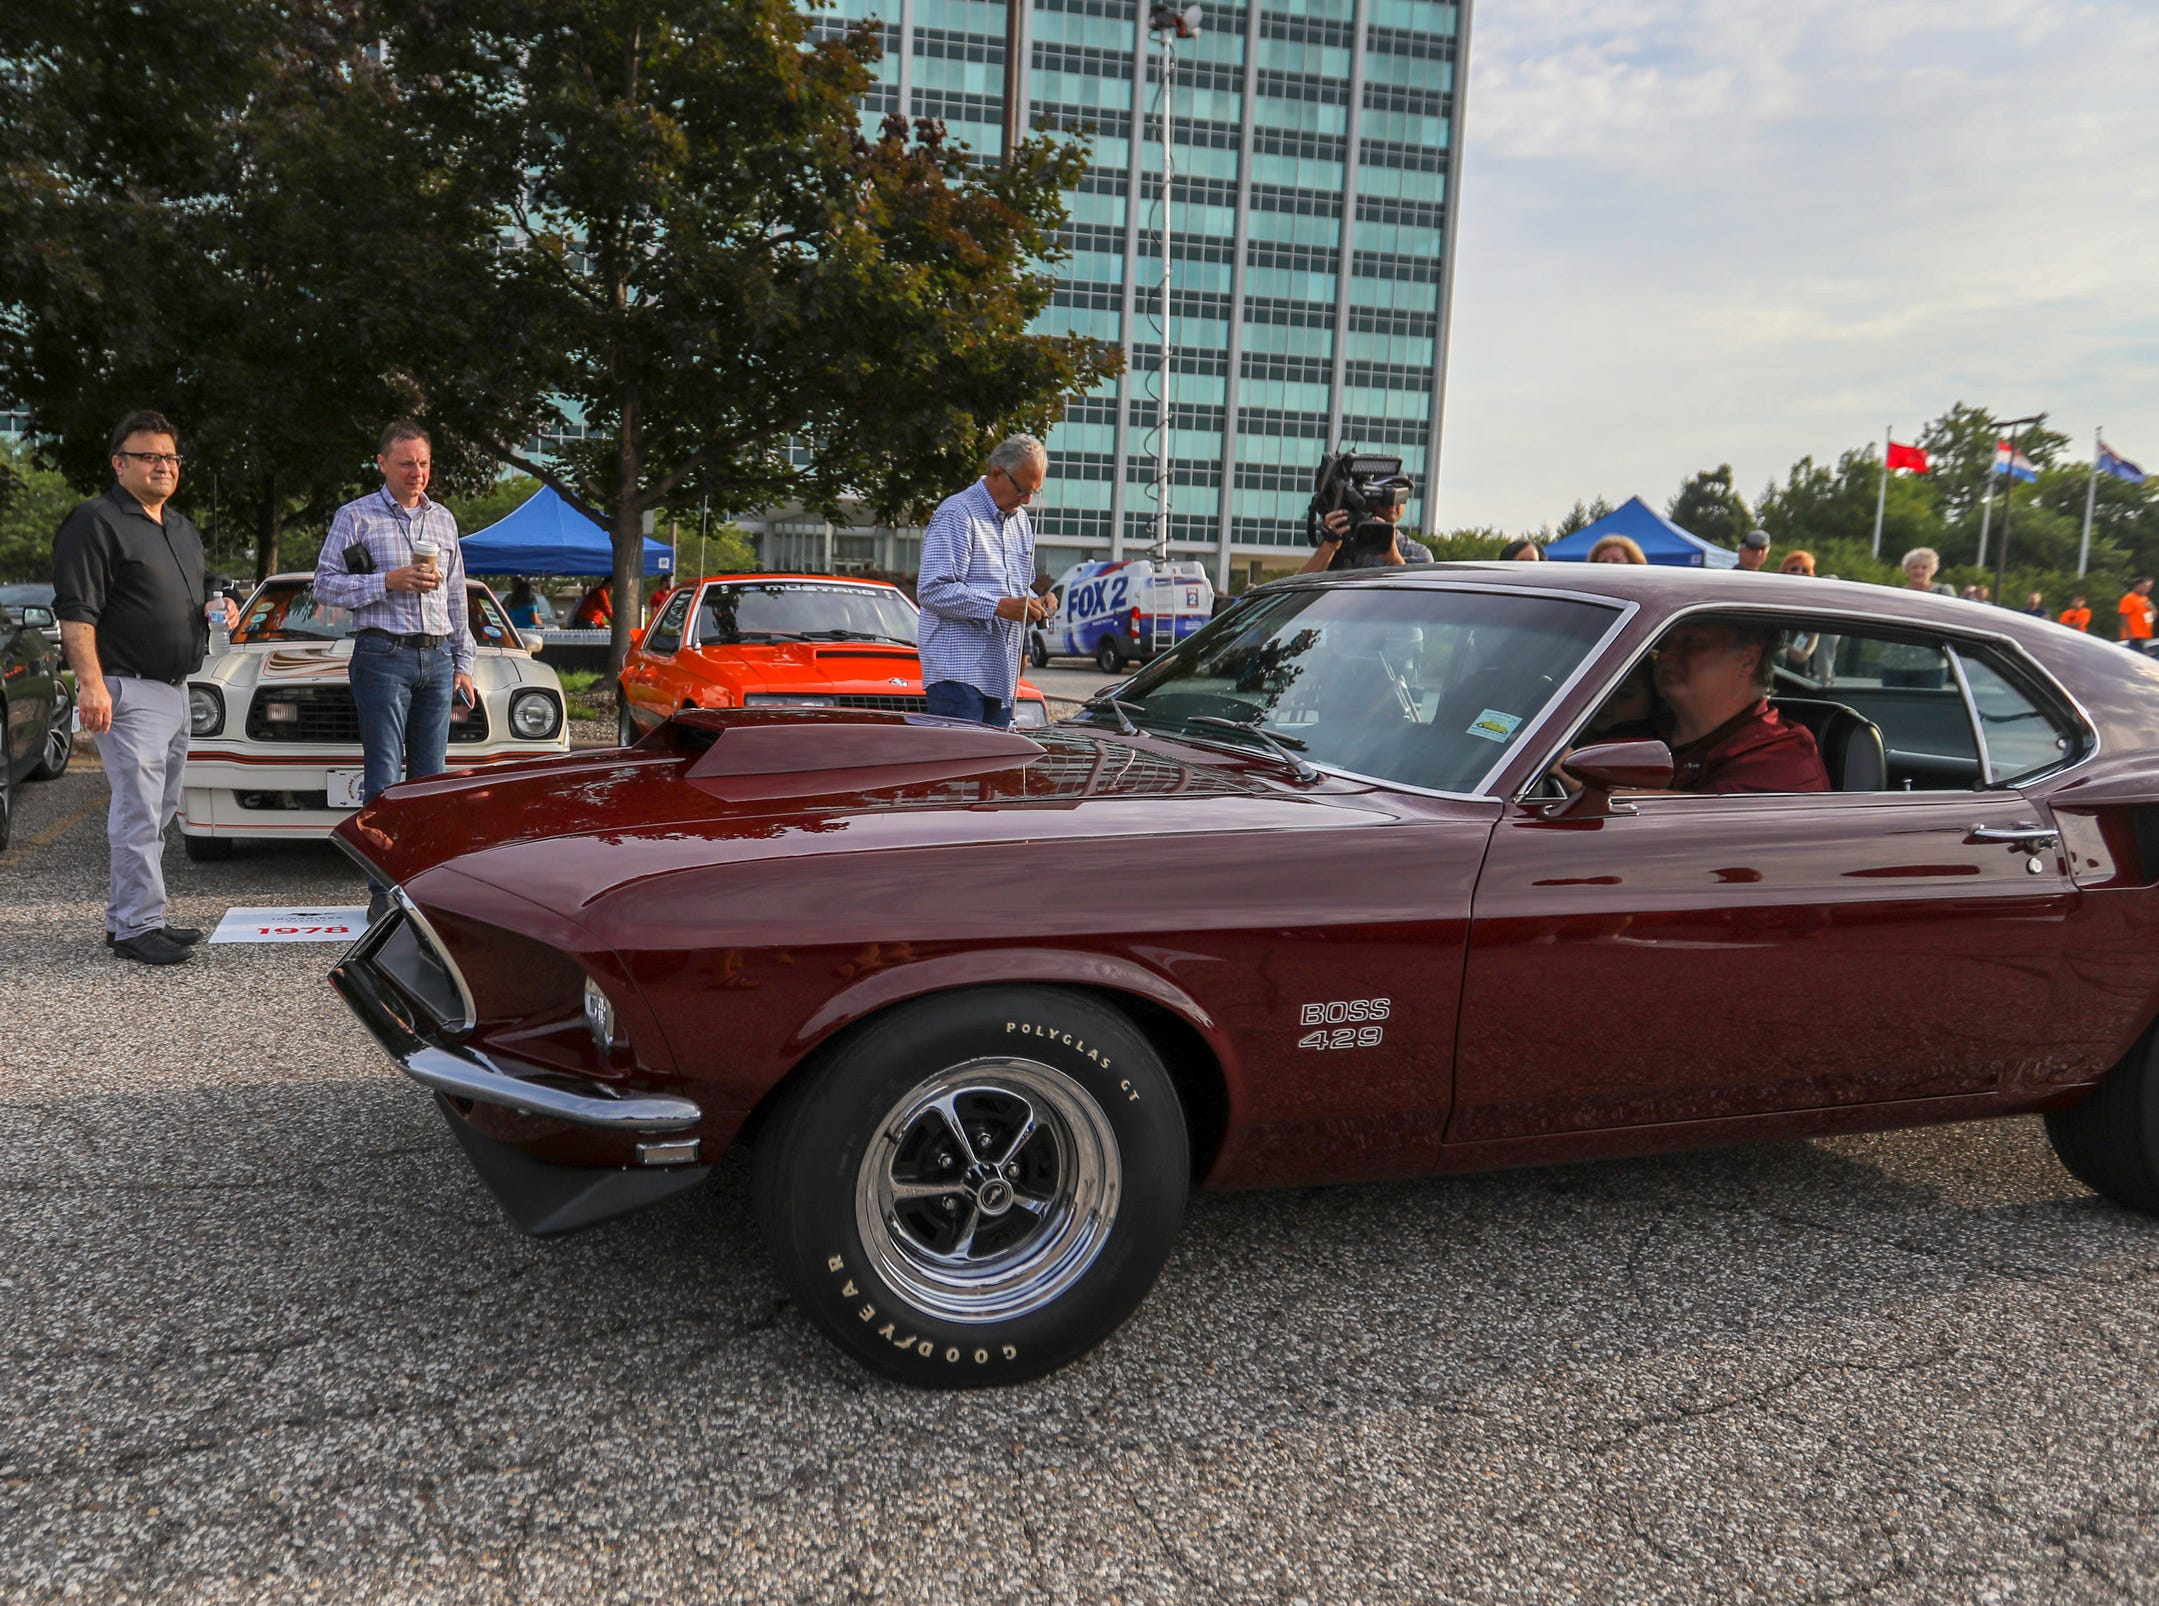 1969 Ford Mustang Boss 429 pulls into the lot during a Ford event celebrating the 10,000,000 Mustang built at the Ford Motor Company World Headquarters in Dearborn on Wed., Aug 8, 2018.